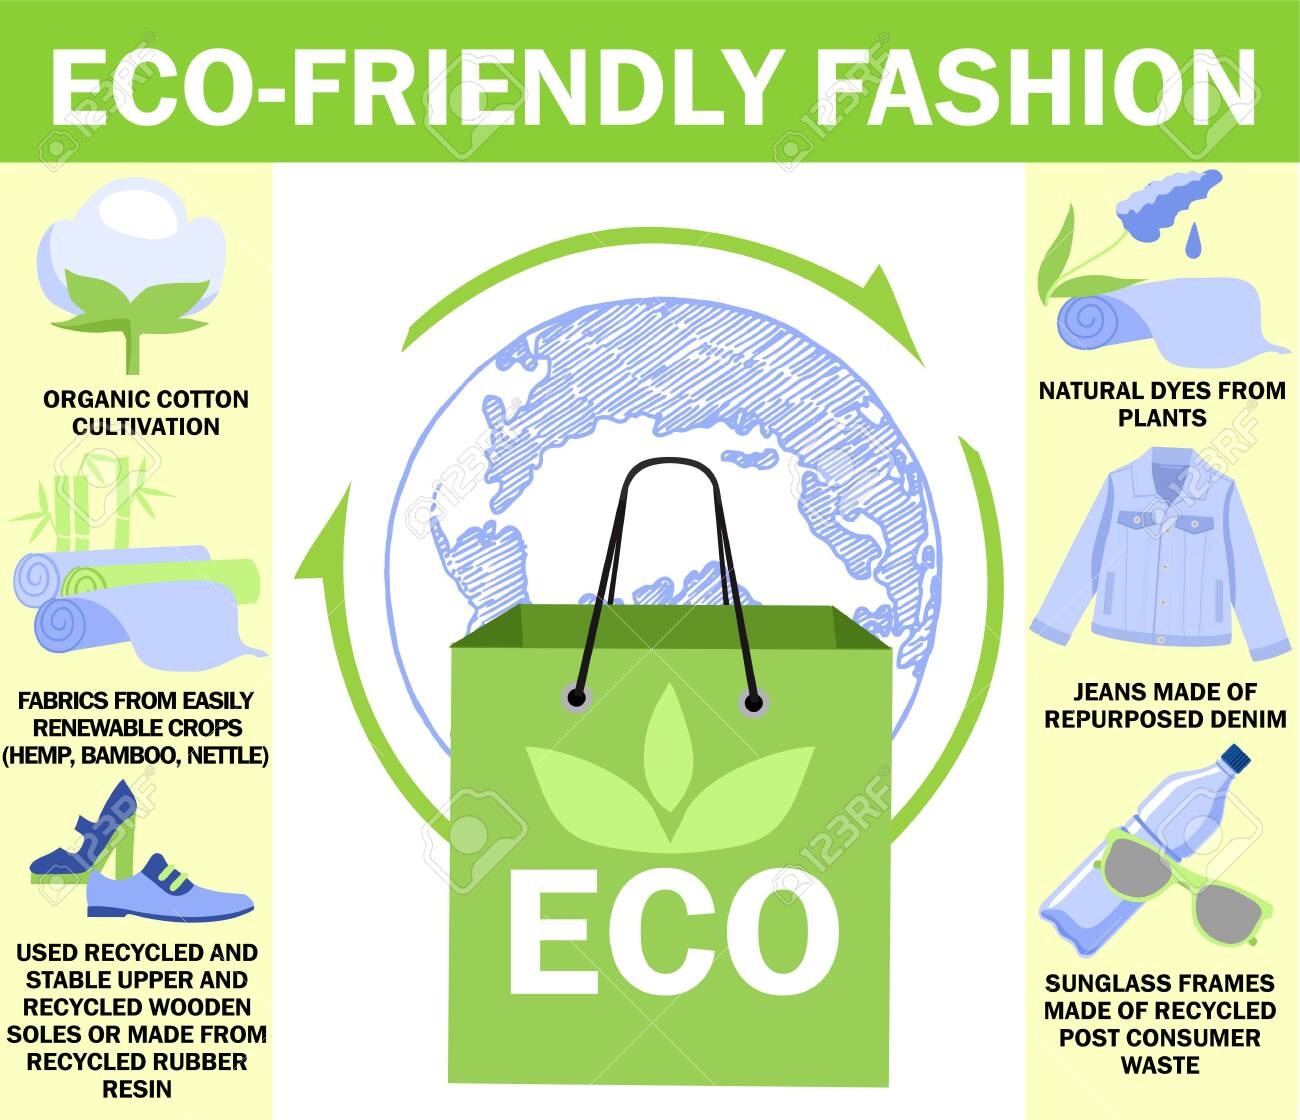 Environmental friendly fashion. How to reduce waste in garment manufacturing